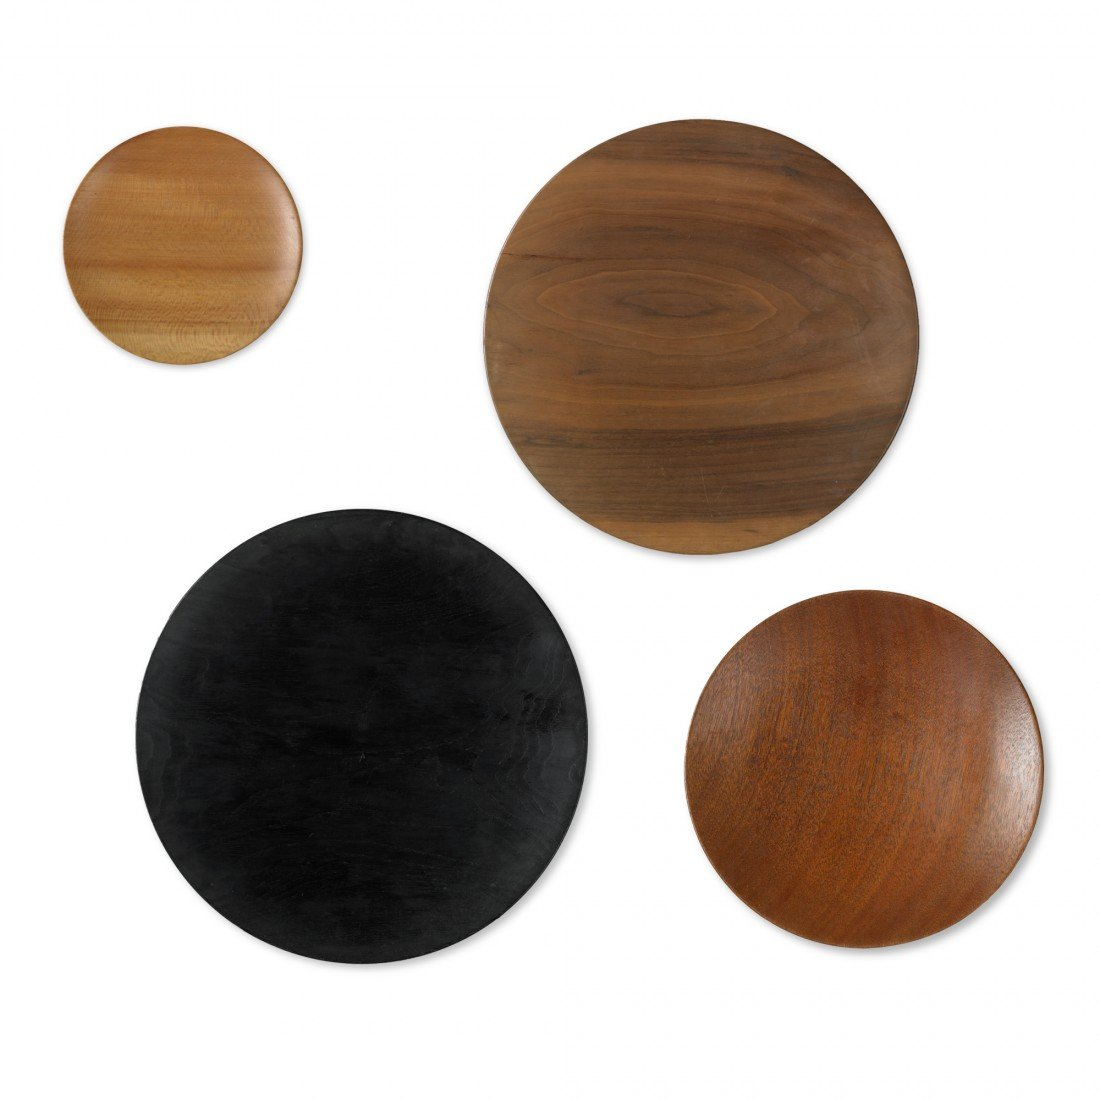 136: Prestini collection of four turned-wood plates